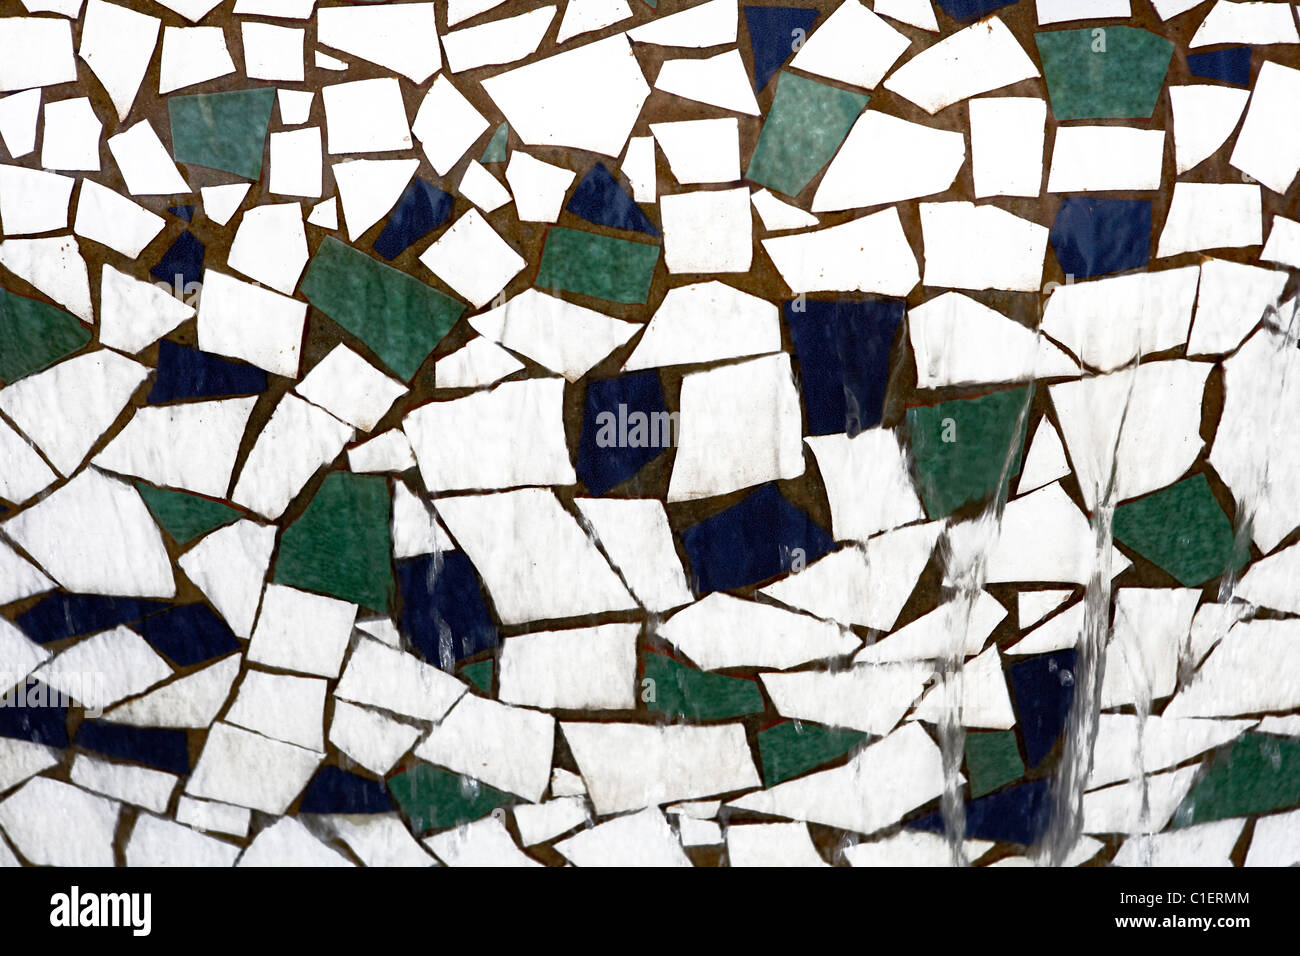 Patch of Mosaic on a fountain. - Stock Image